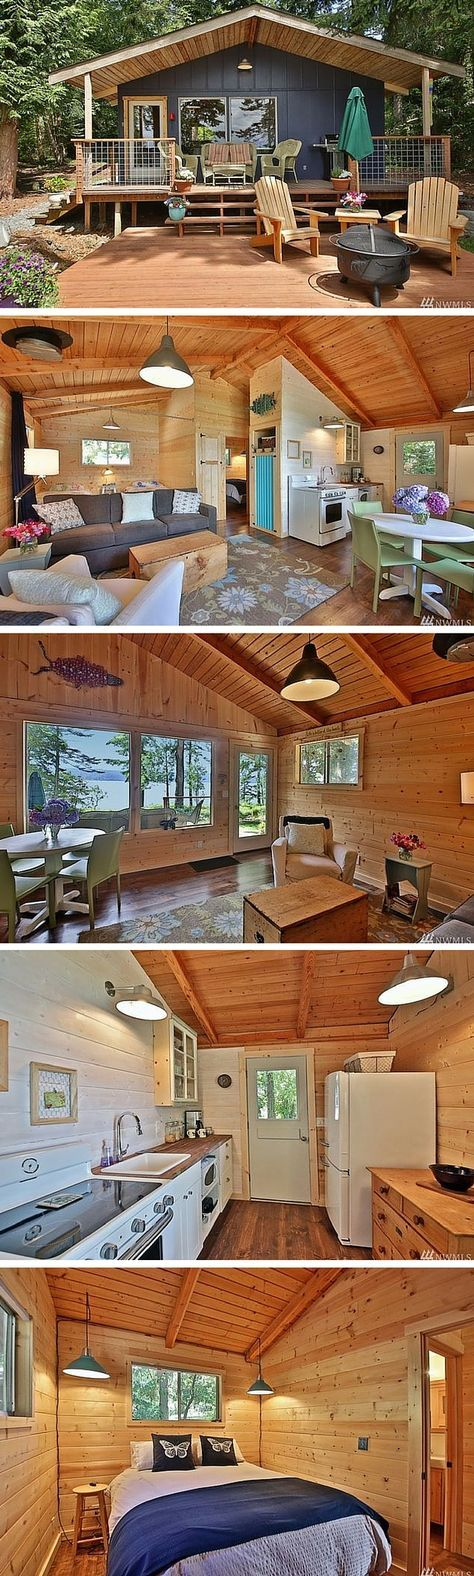 A 528 sq ft cabin in Langley, Washington